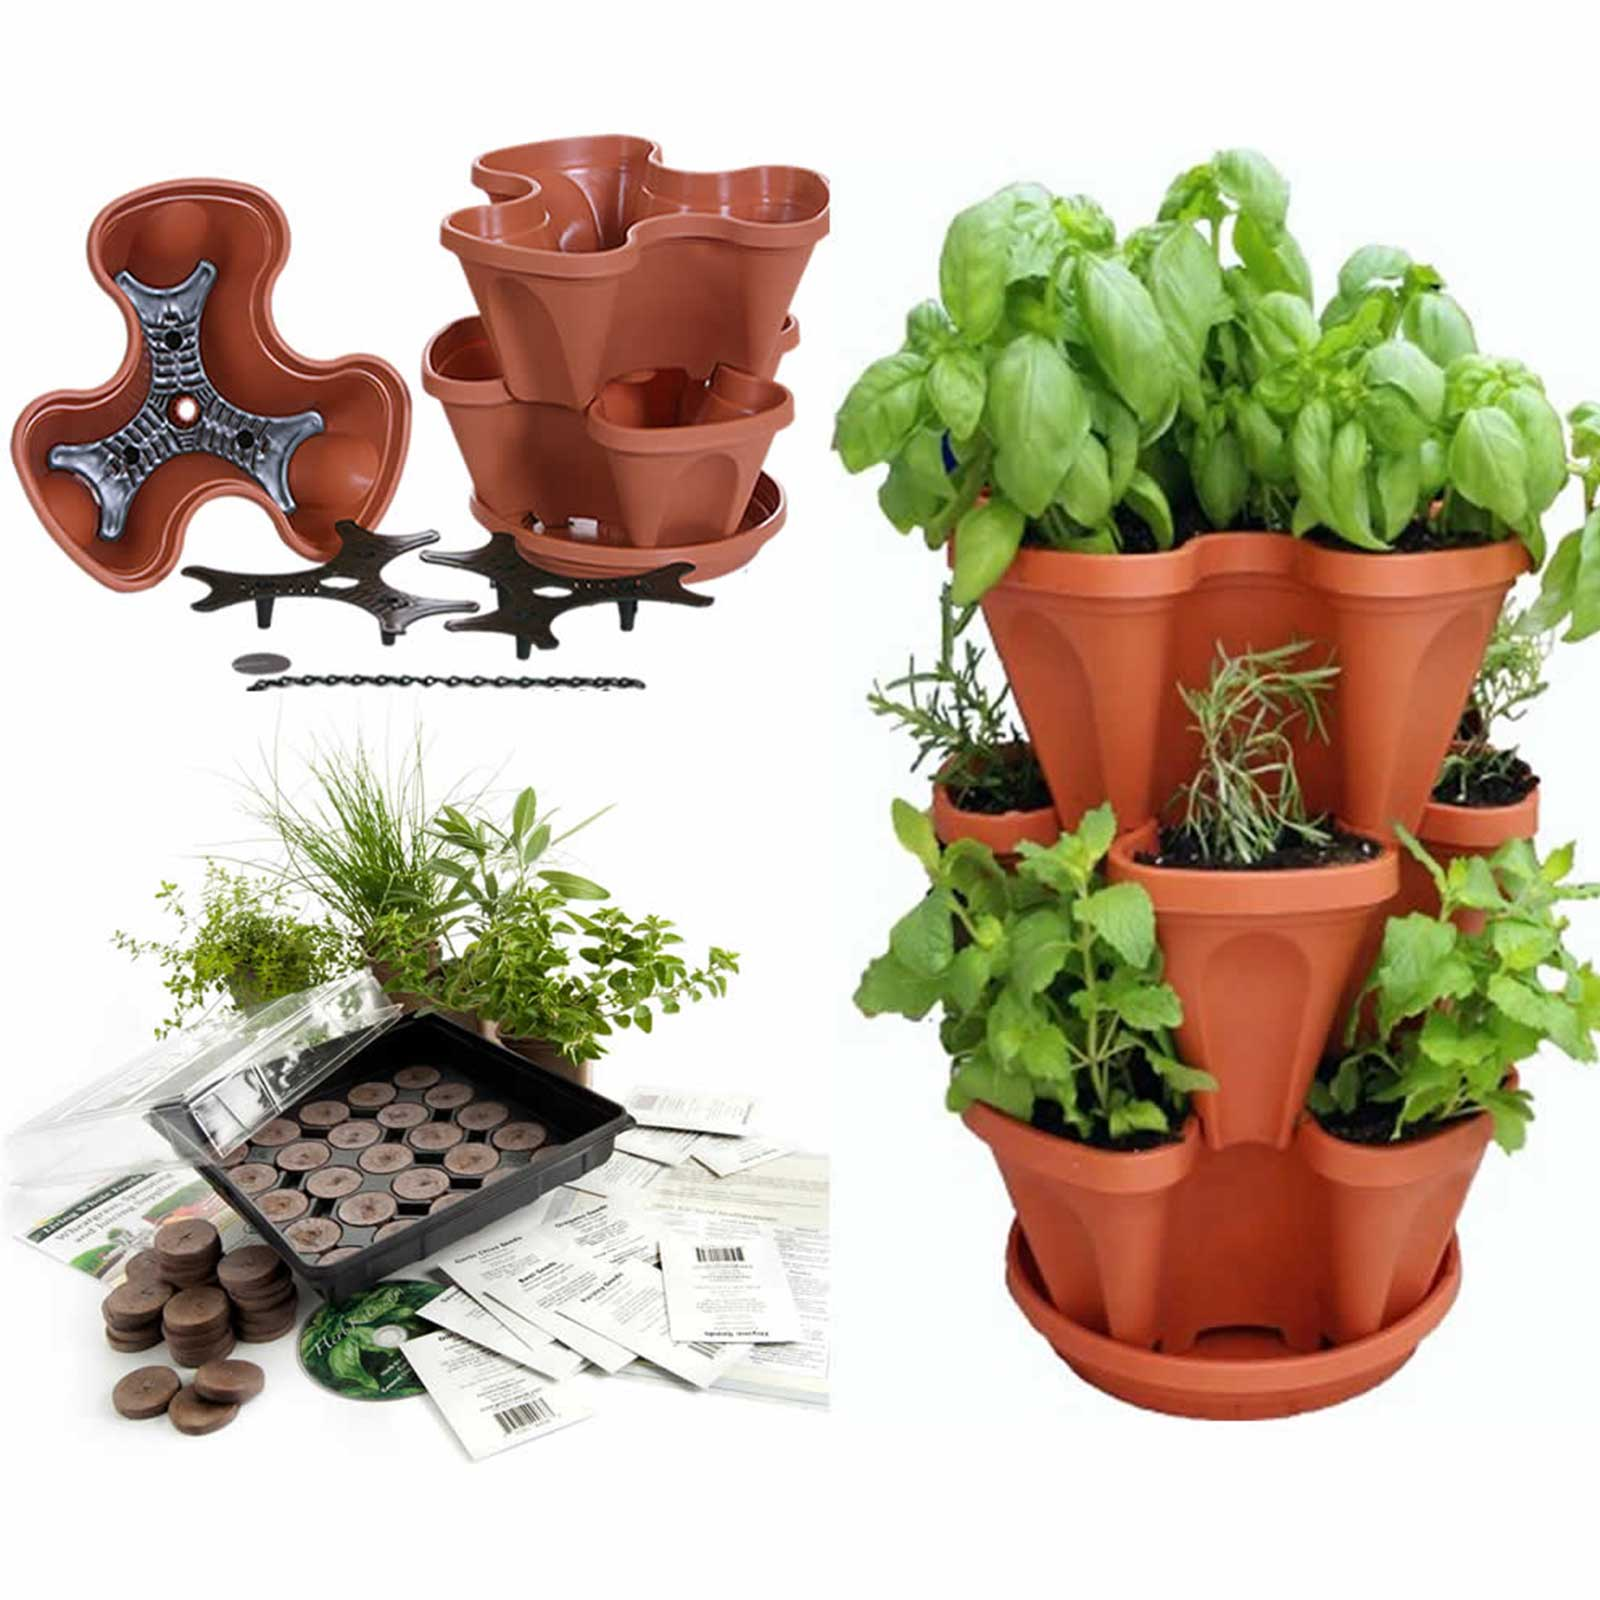 Planter For Herbs Garden Stacker Planter Indoor Culinary Herb Garden Kit Great Gift Idea Grow Cooking Herbs Seeds Cilantro Basil Dill Oregano Includes